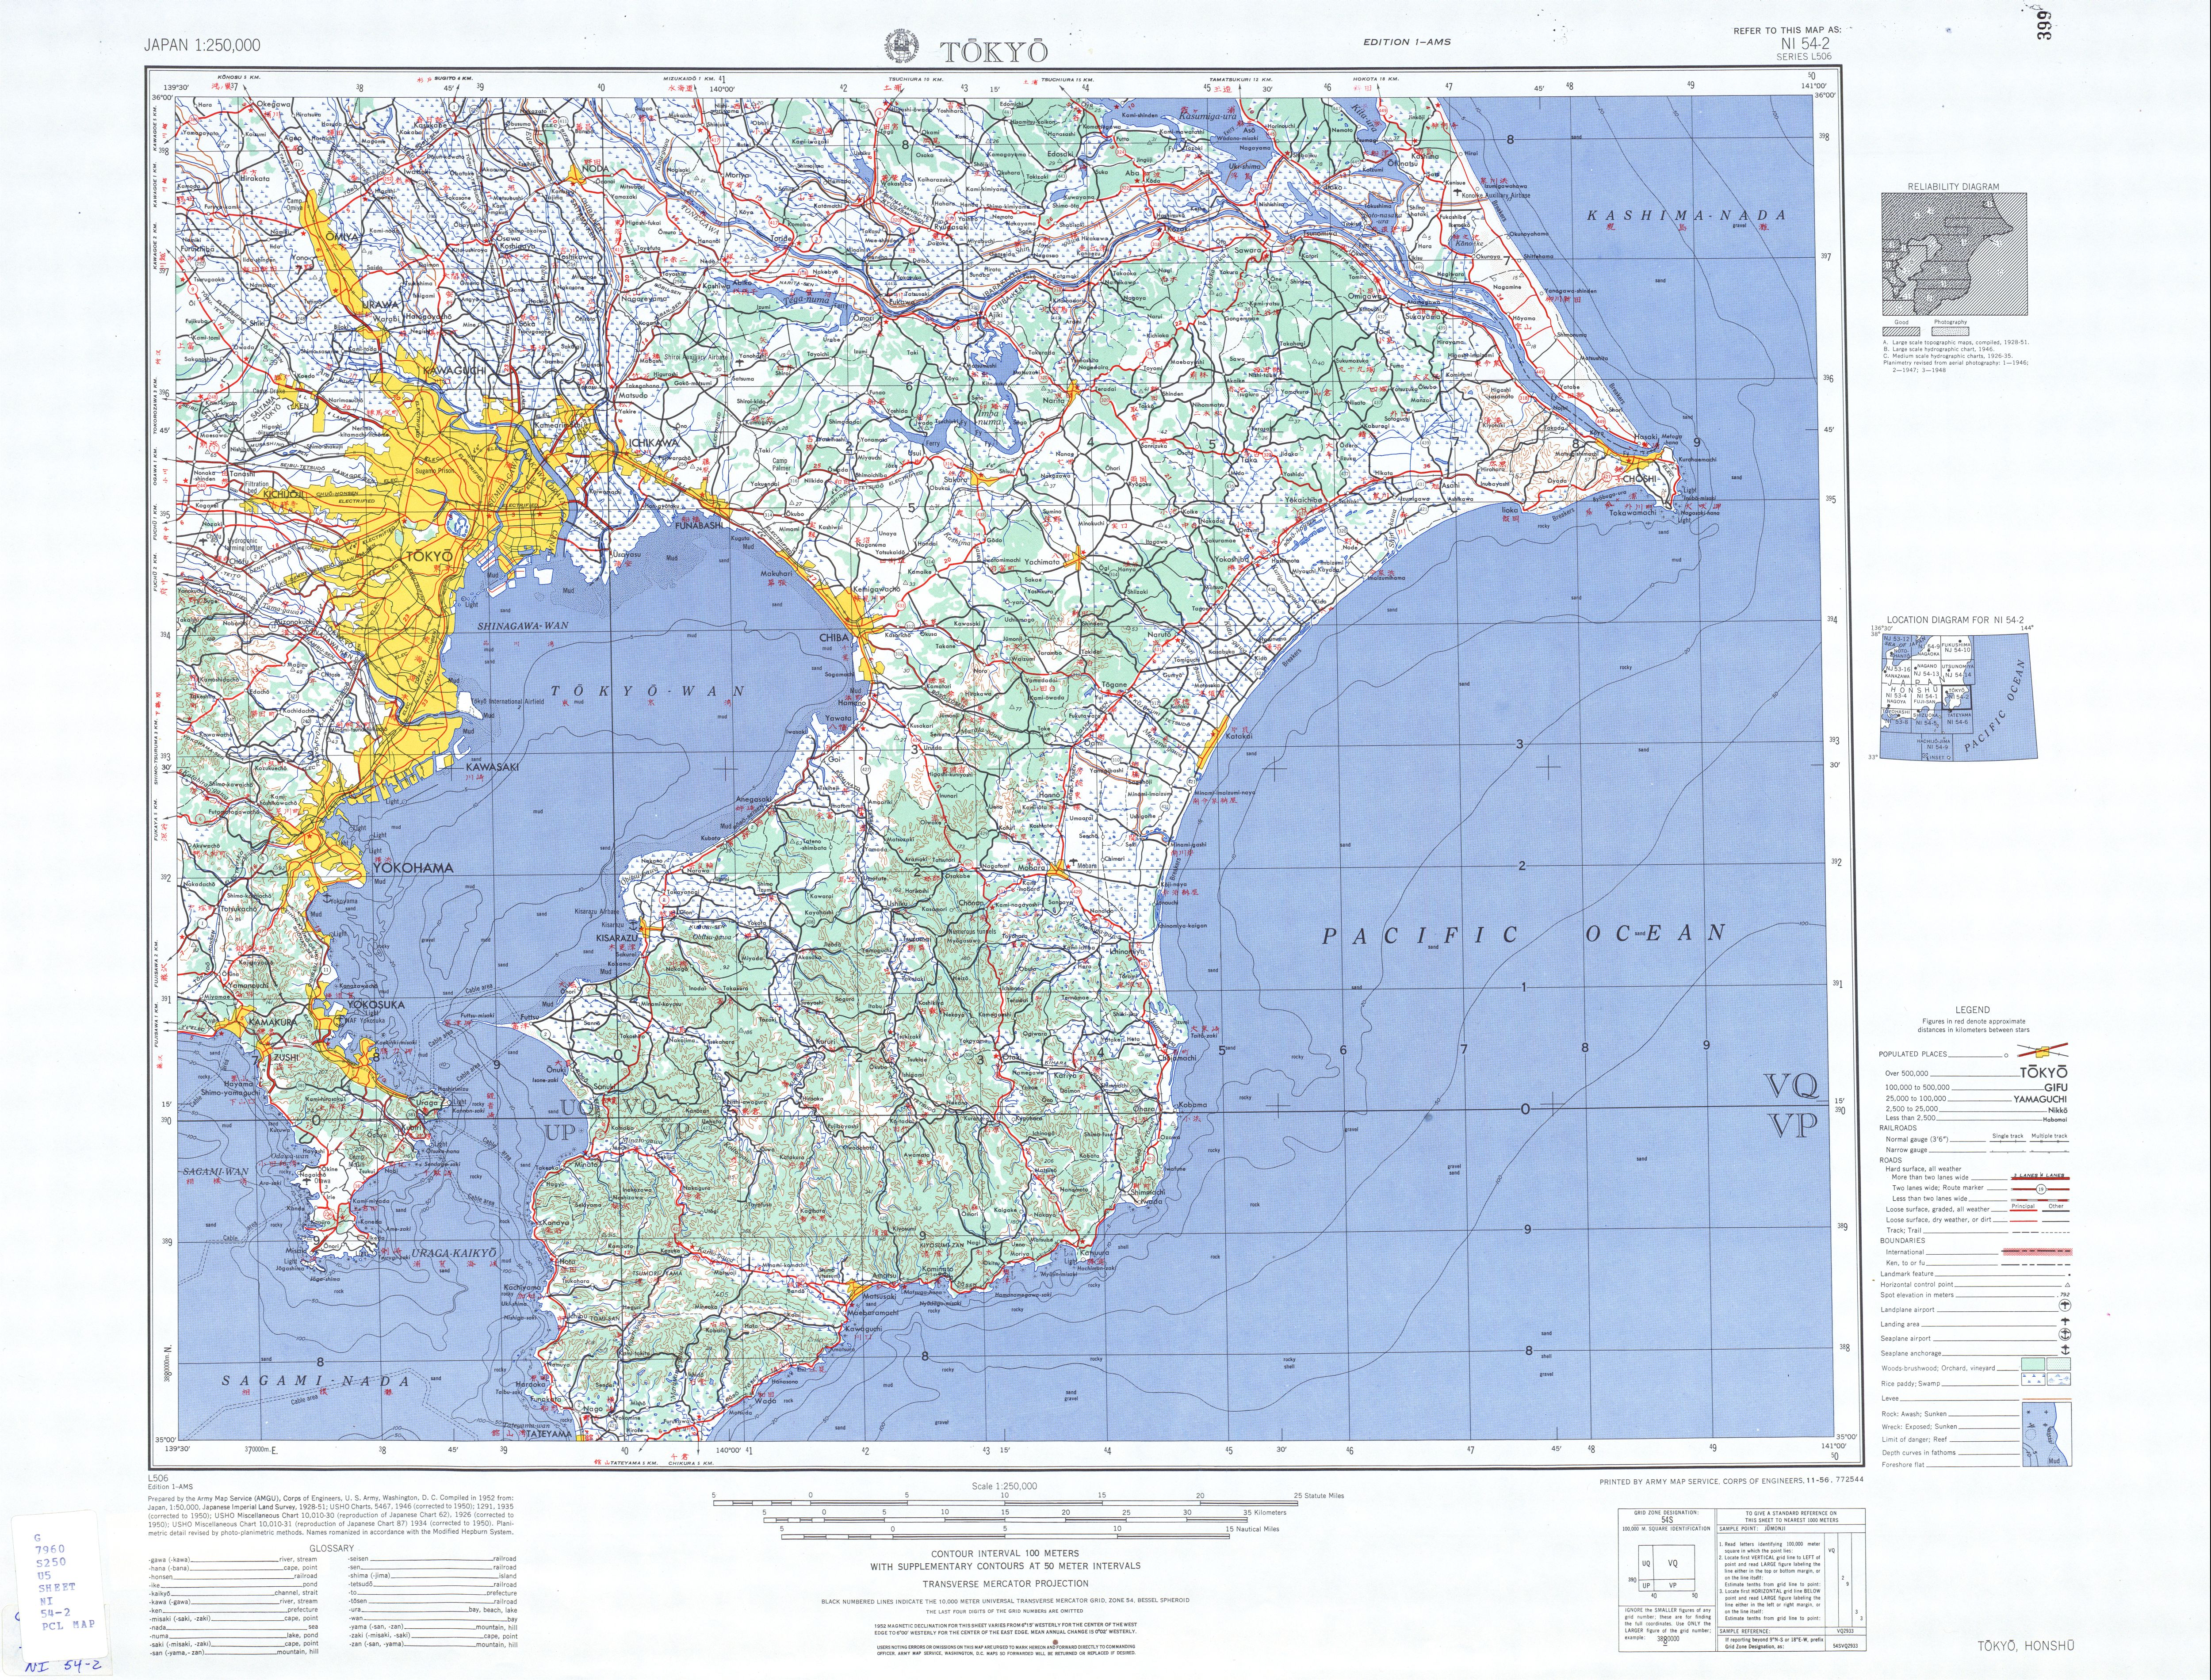 Japan AMS Topographic Maps - Perry-Castañeda Map Collection - UT